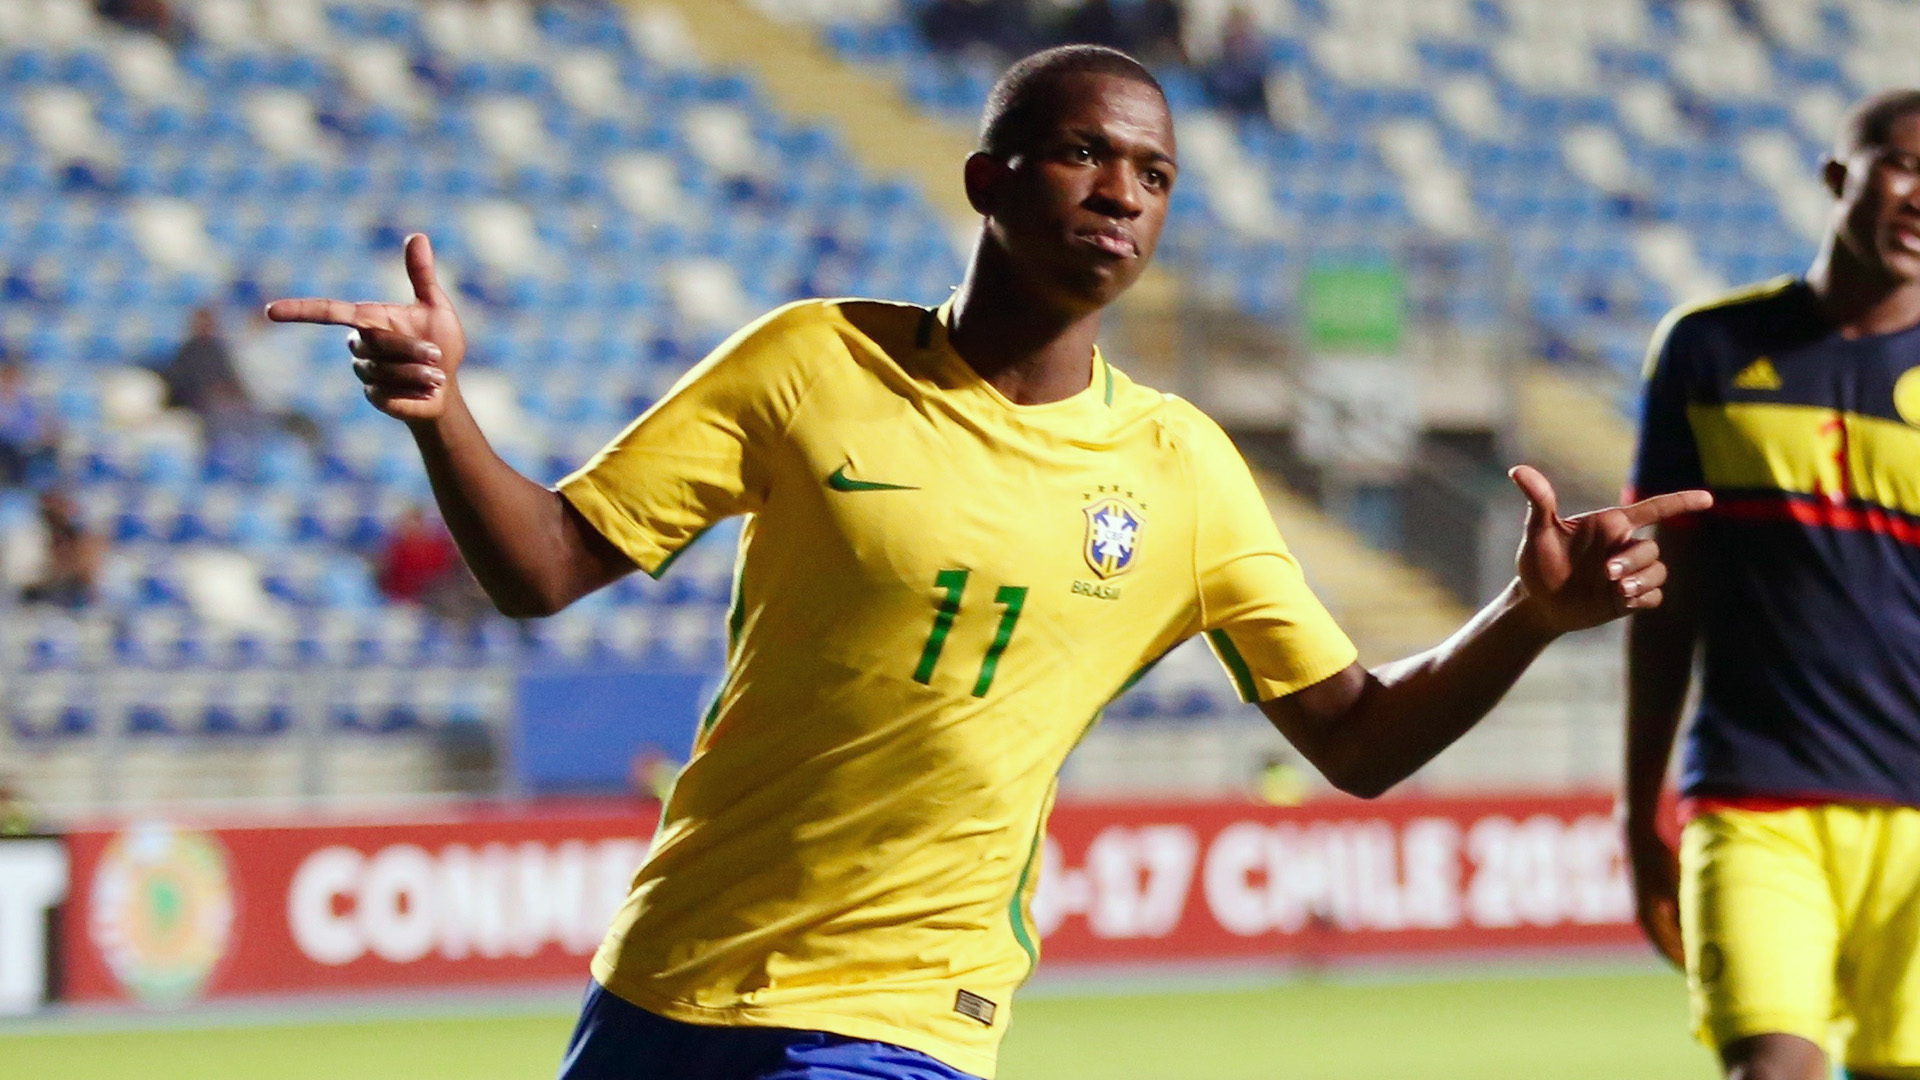 Real Madrid Lead Race To Sign €49million-rated Teenager Vinicius Junior